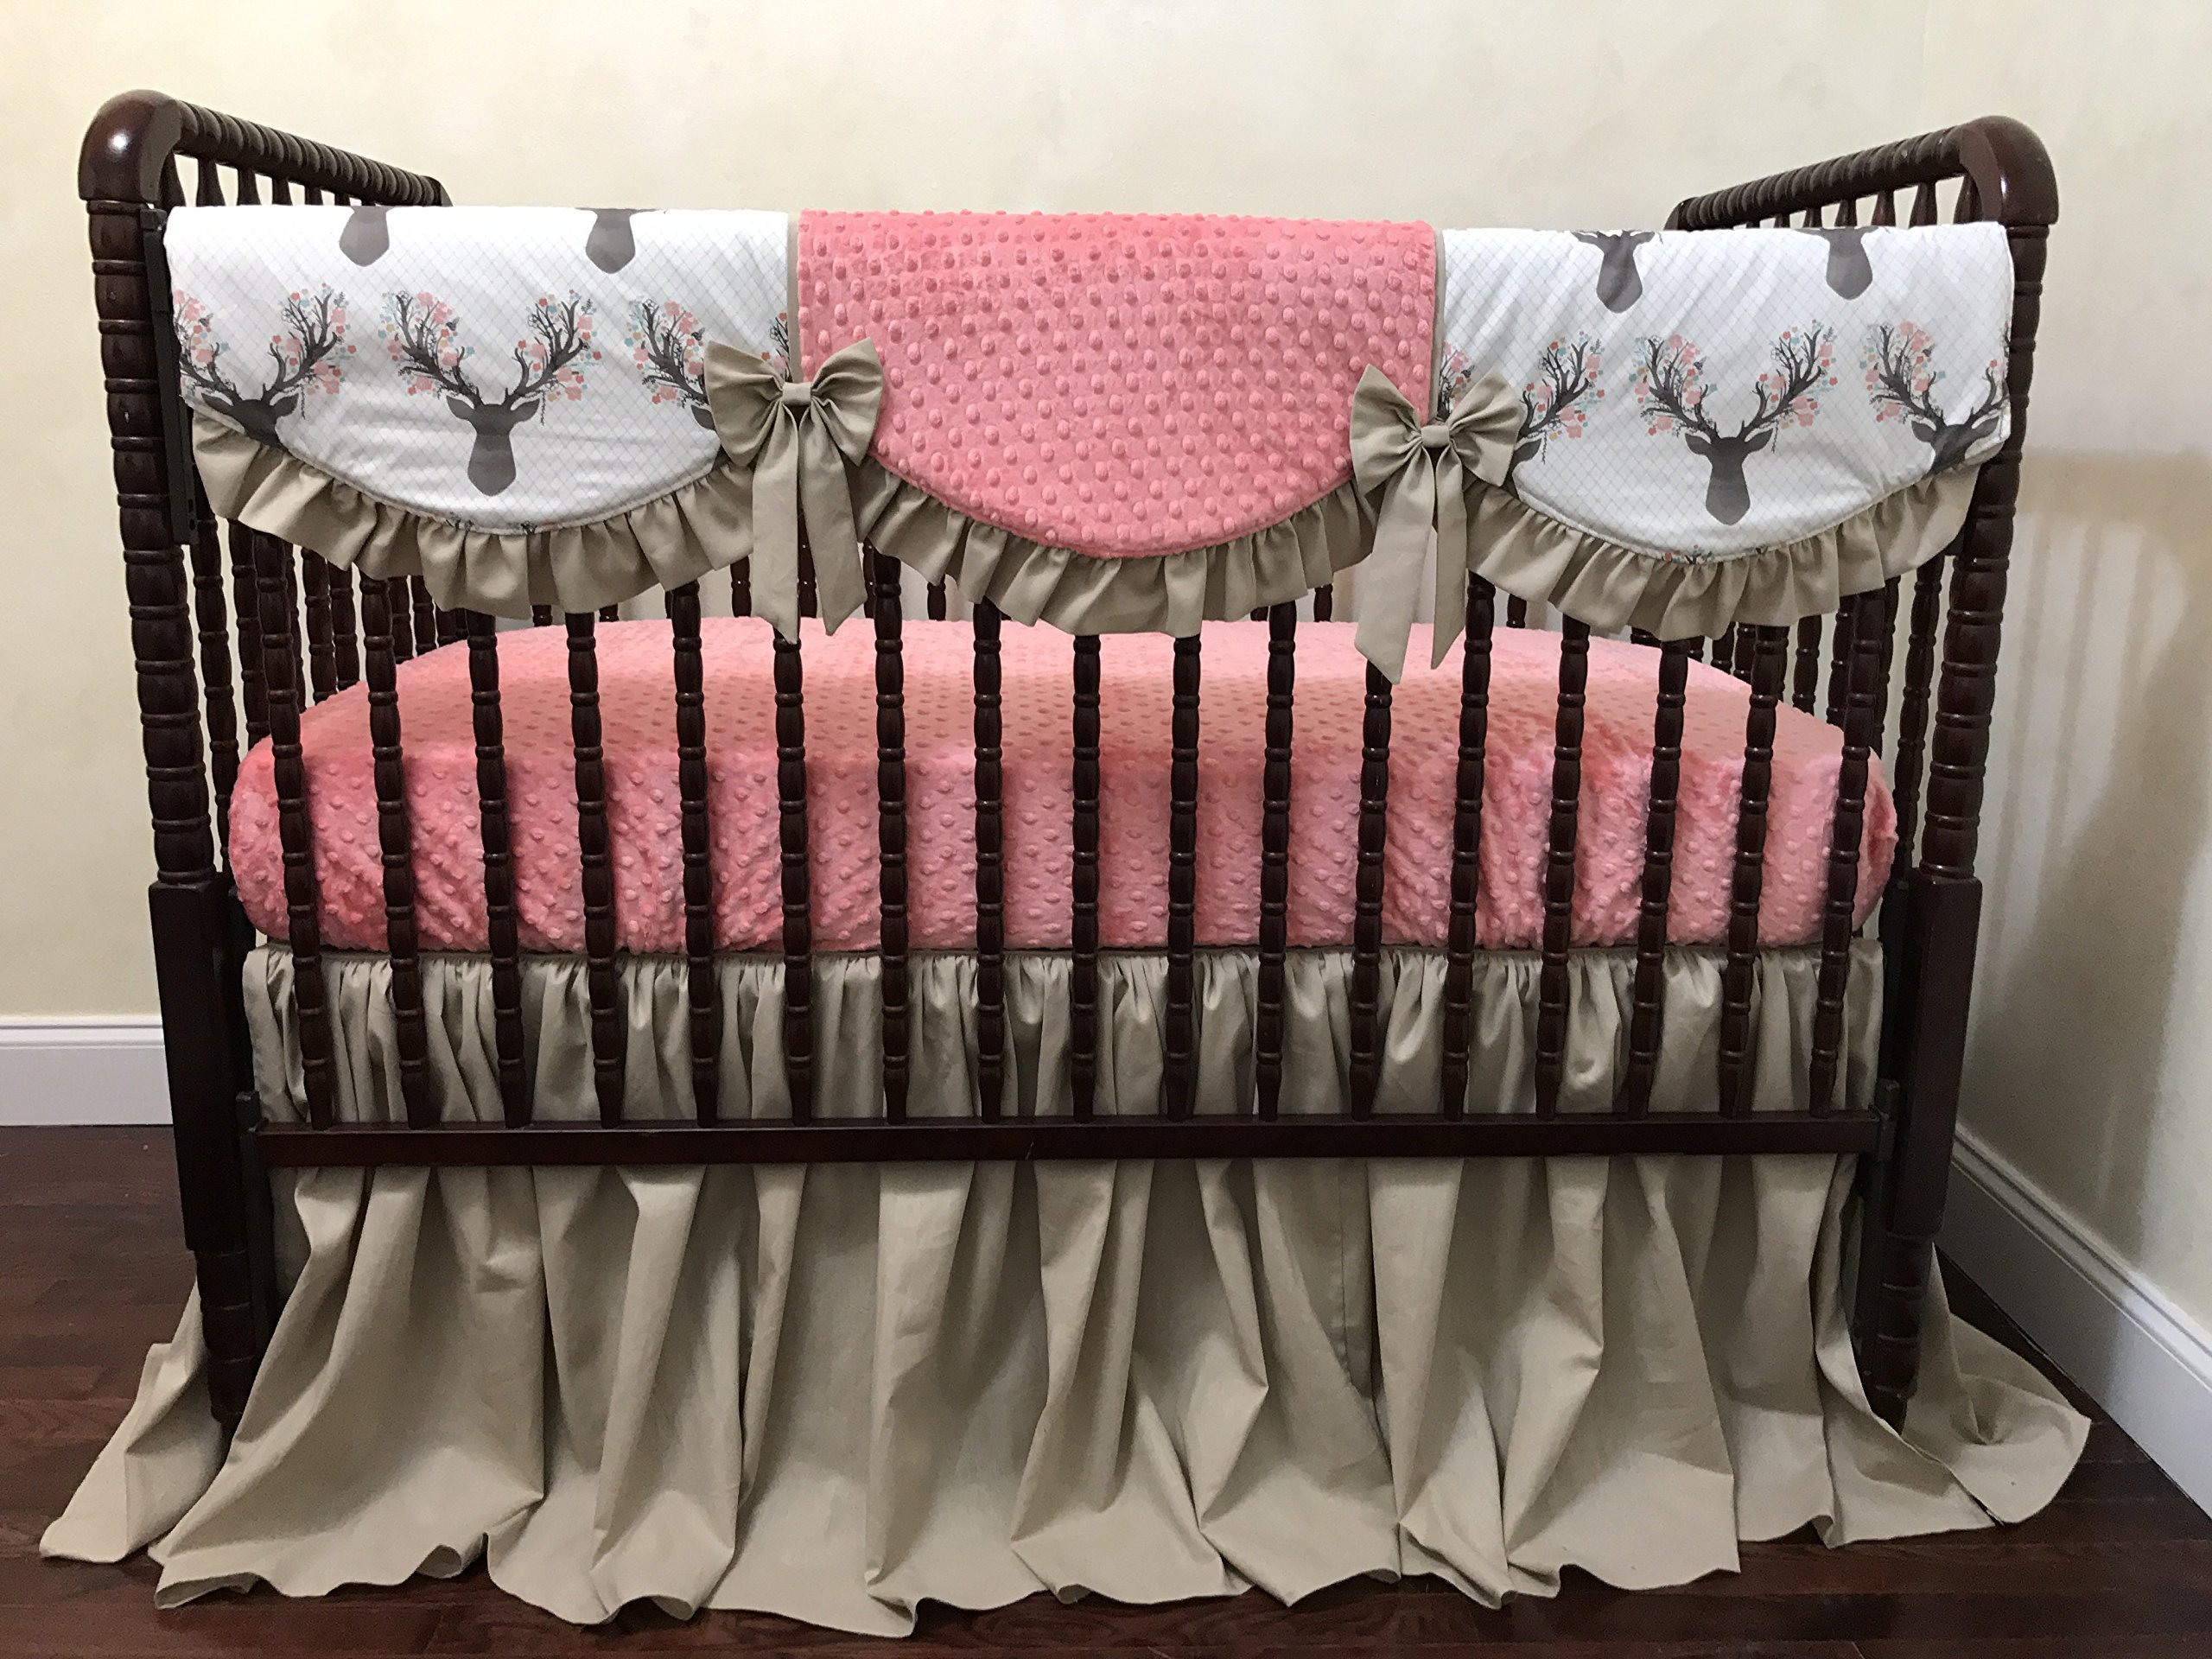 Girl Nursery Bedding, Baby Girl Crib Bedding Set Corinna - Deer Crib Bedding in Khaki and Coral, Woodland Nursery Bedding - Choose Your Pieces by Just Baby Designs Inc